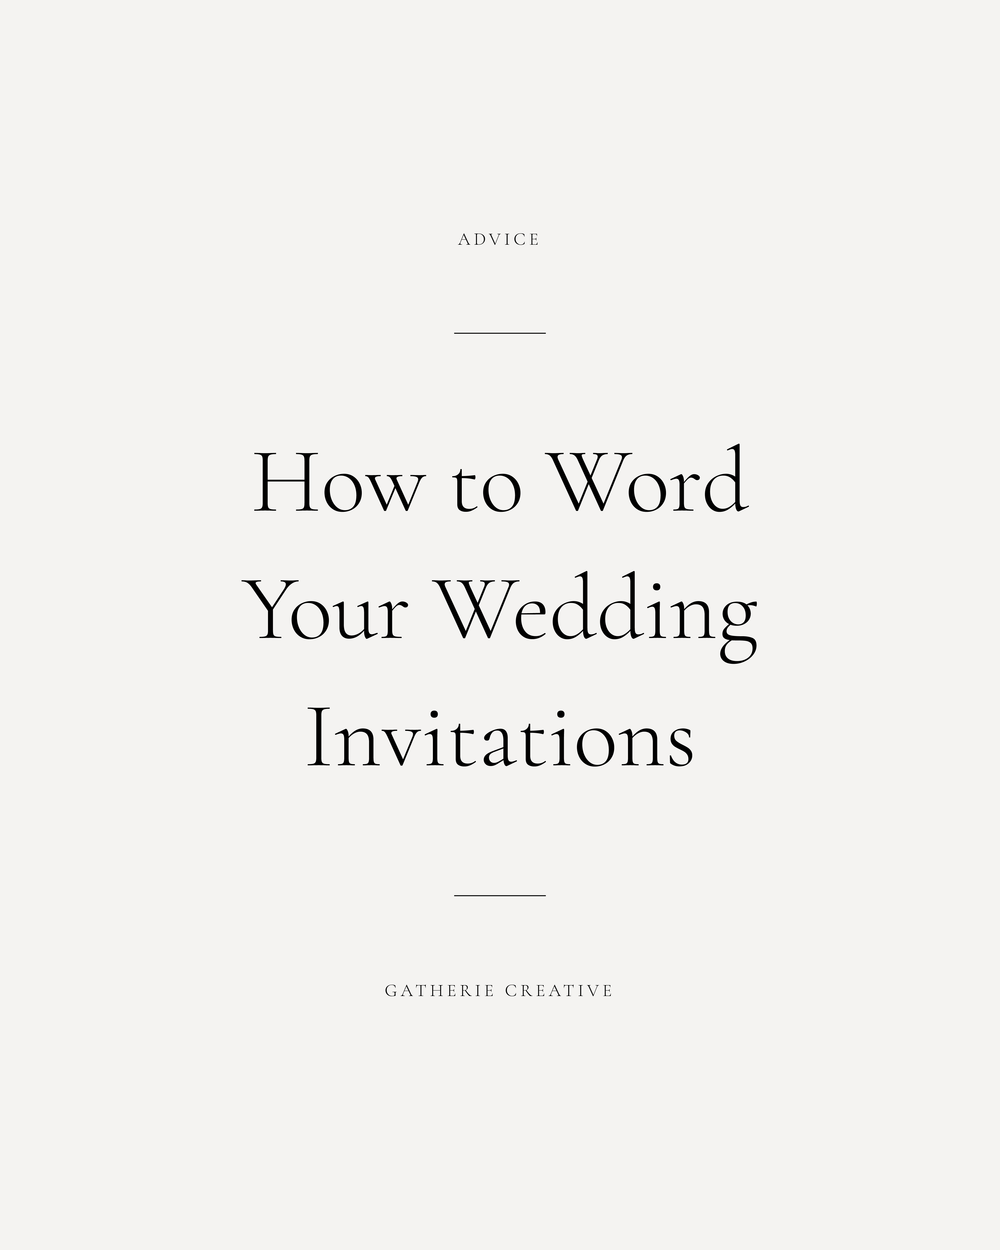 wedding_invitation_wording_etiquette